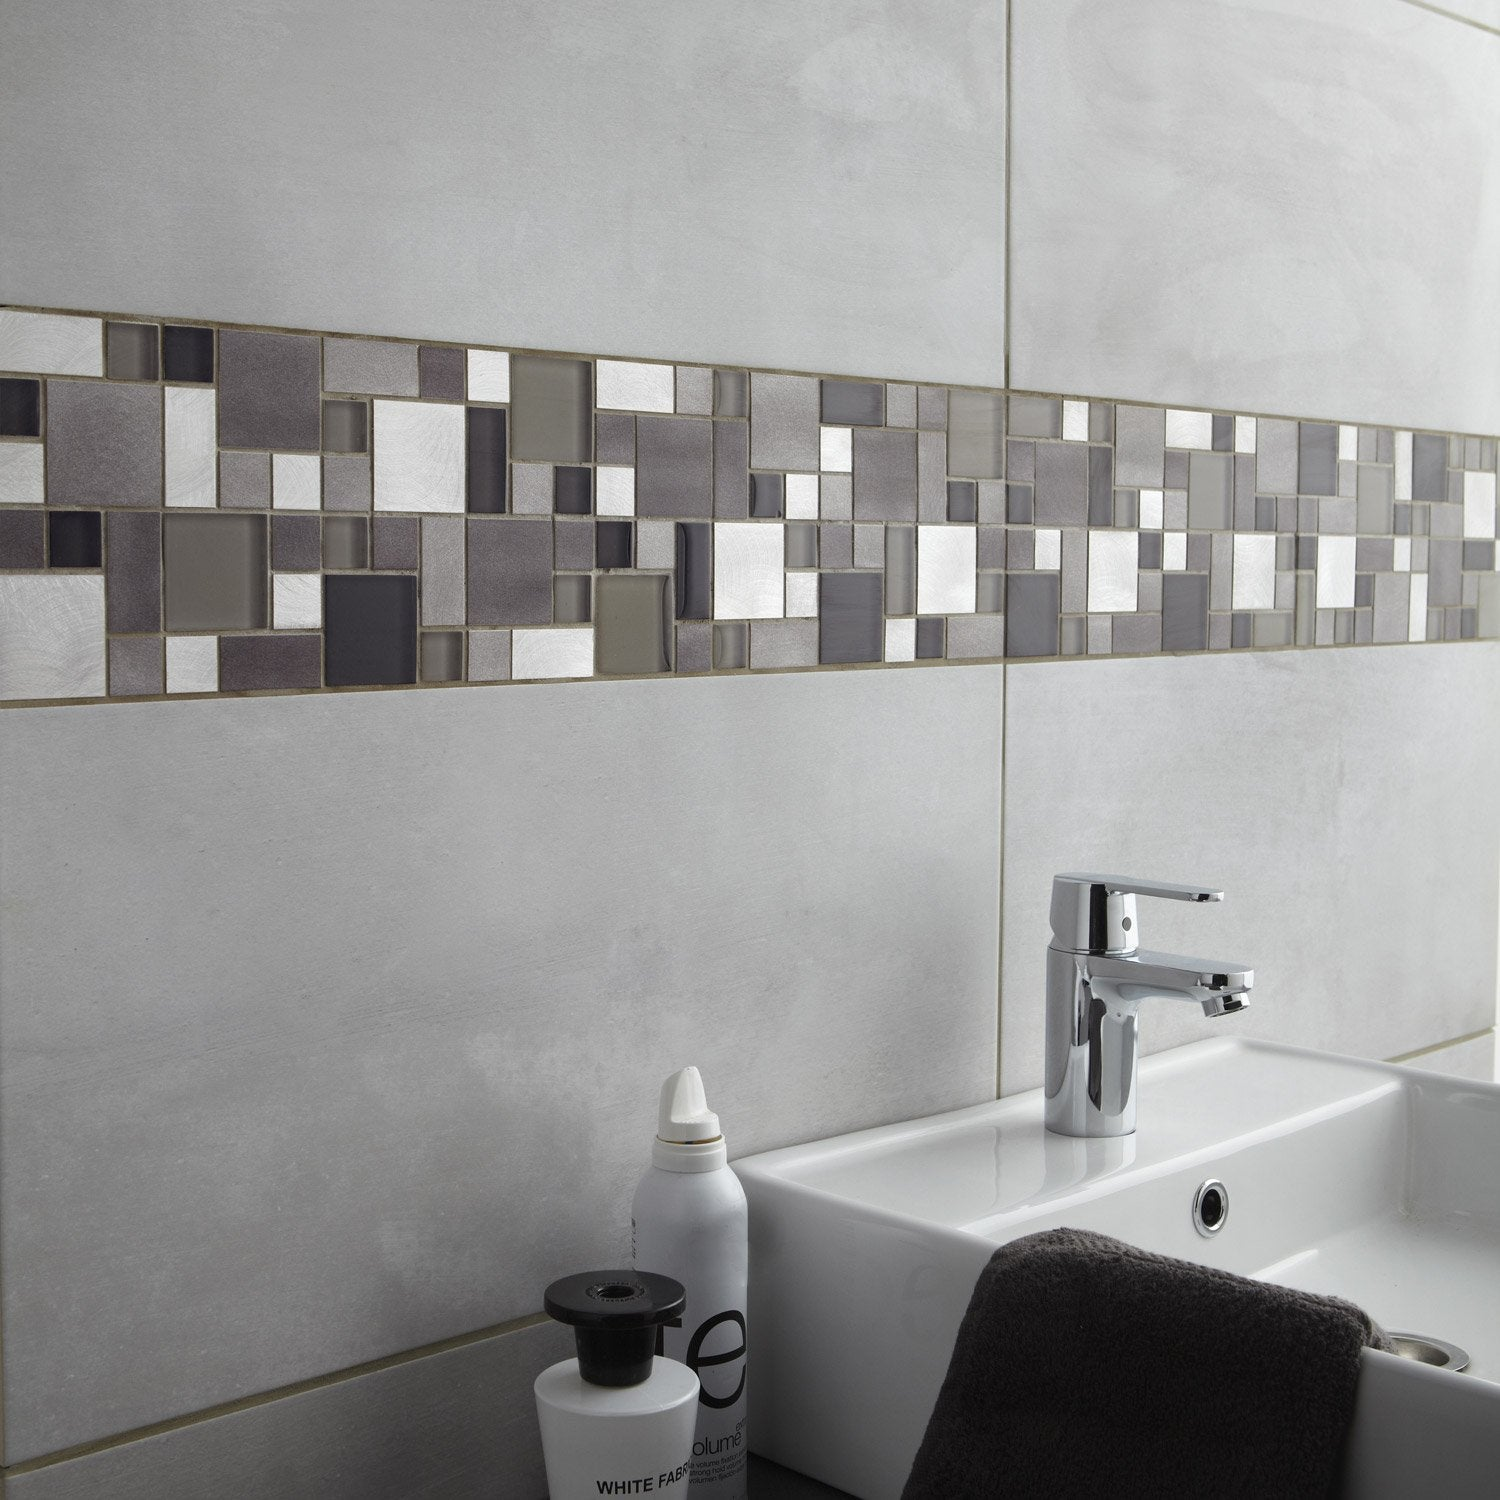 Fa ence mur gris clair denver x cm leroy merlin for Faience salle de bain leroy merlin